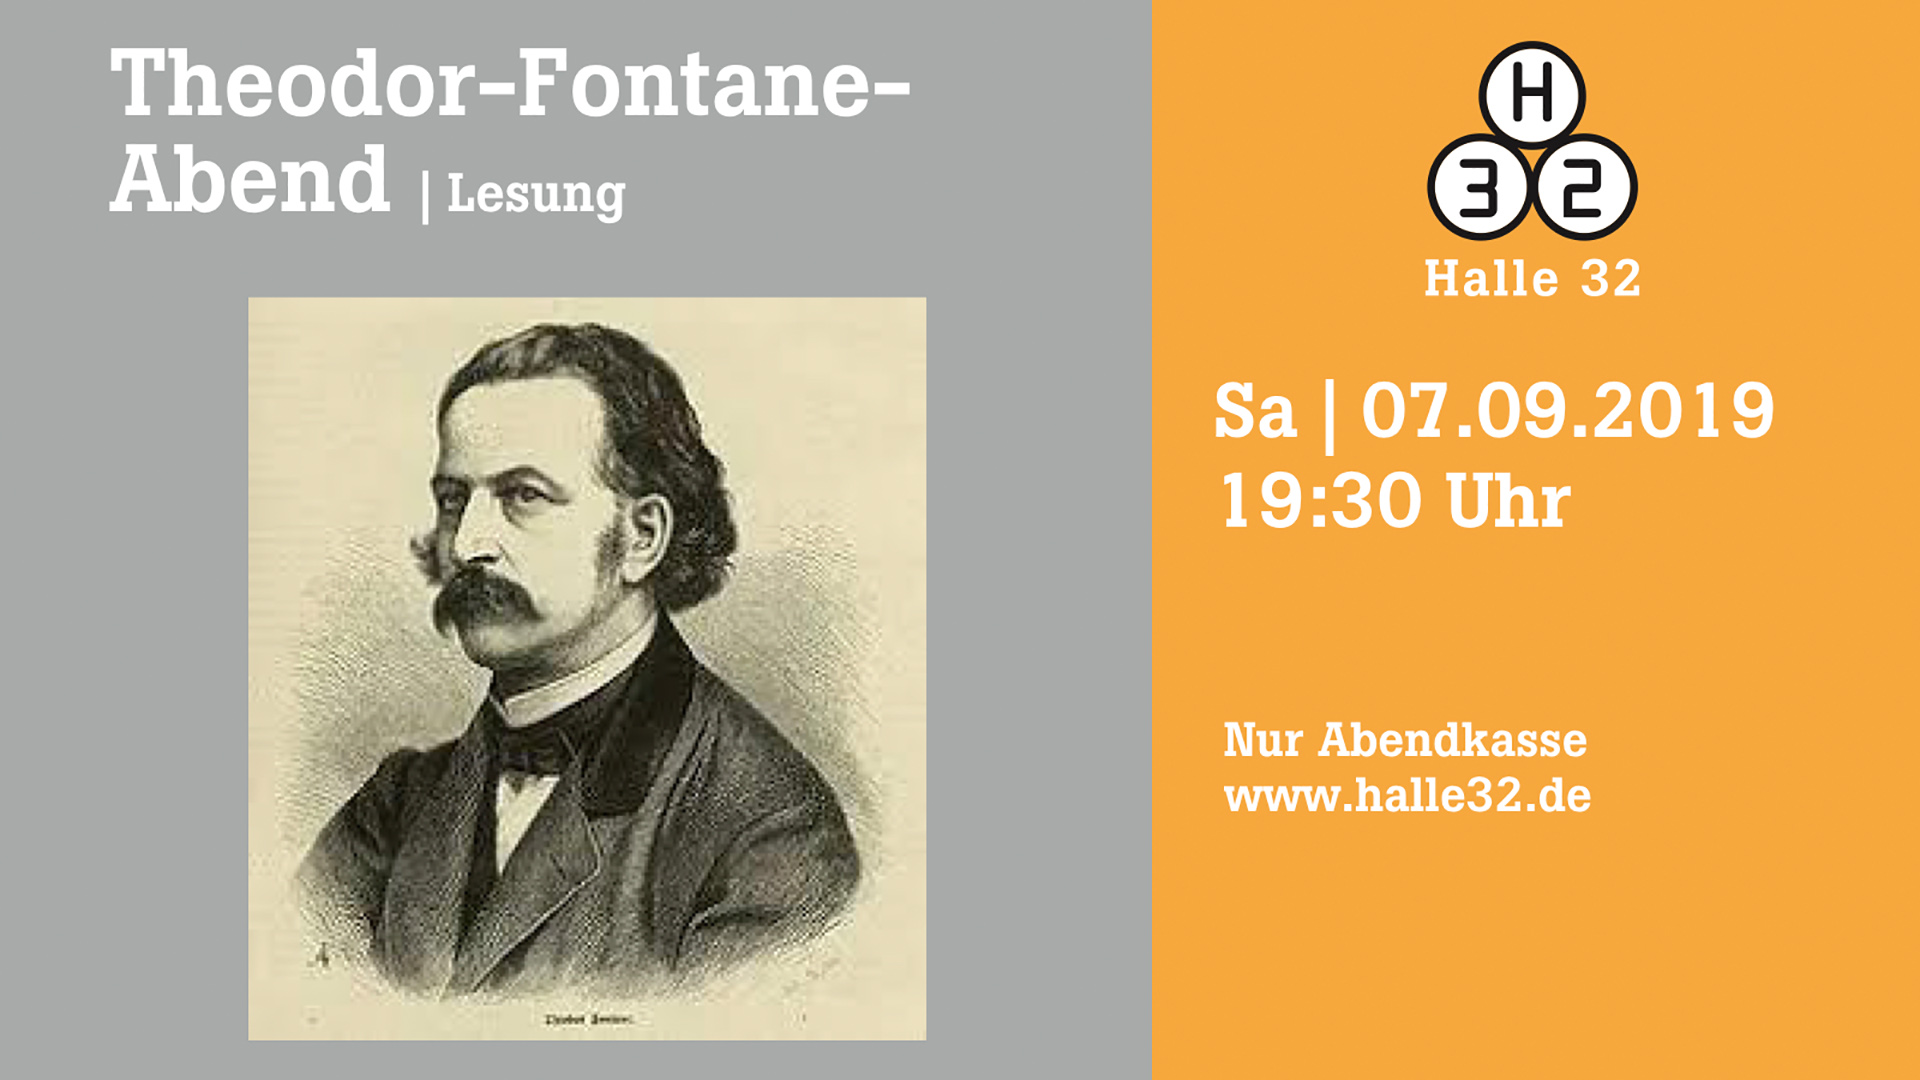 Halle 32 | Theodor-Fontane-Abend / Lesung